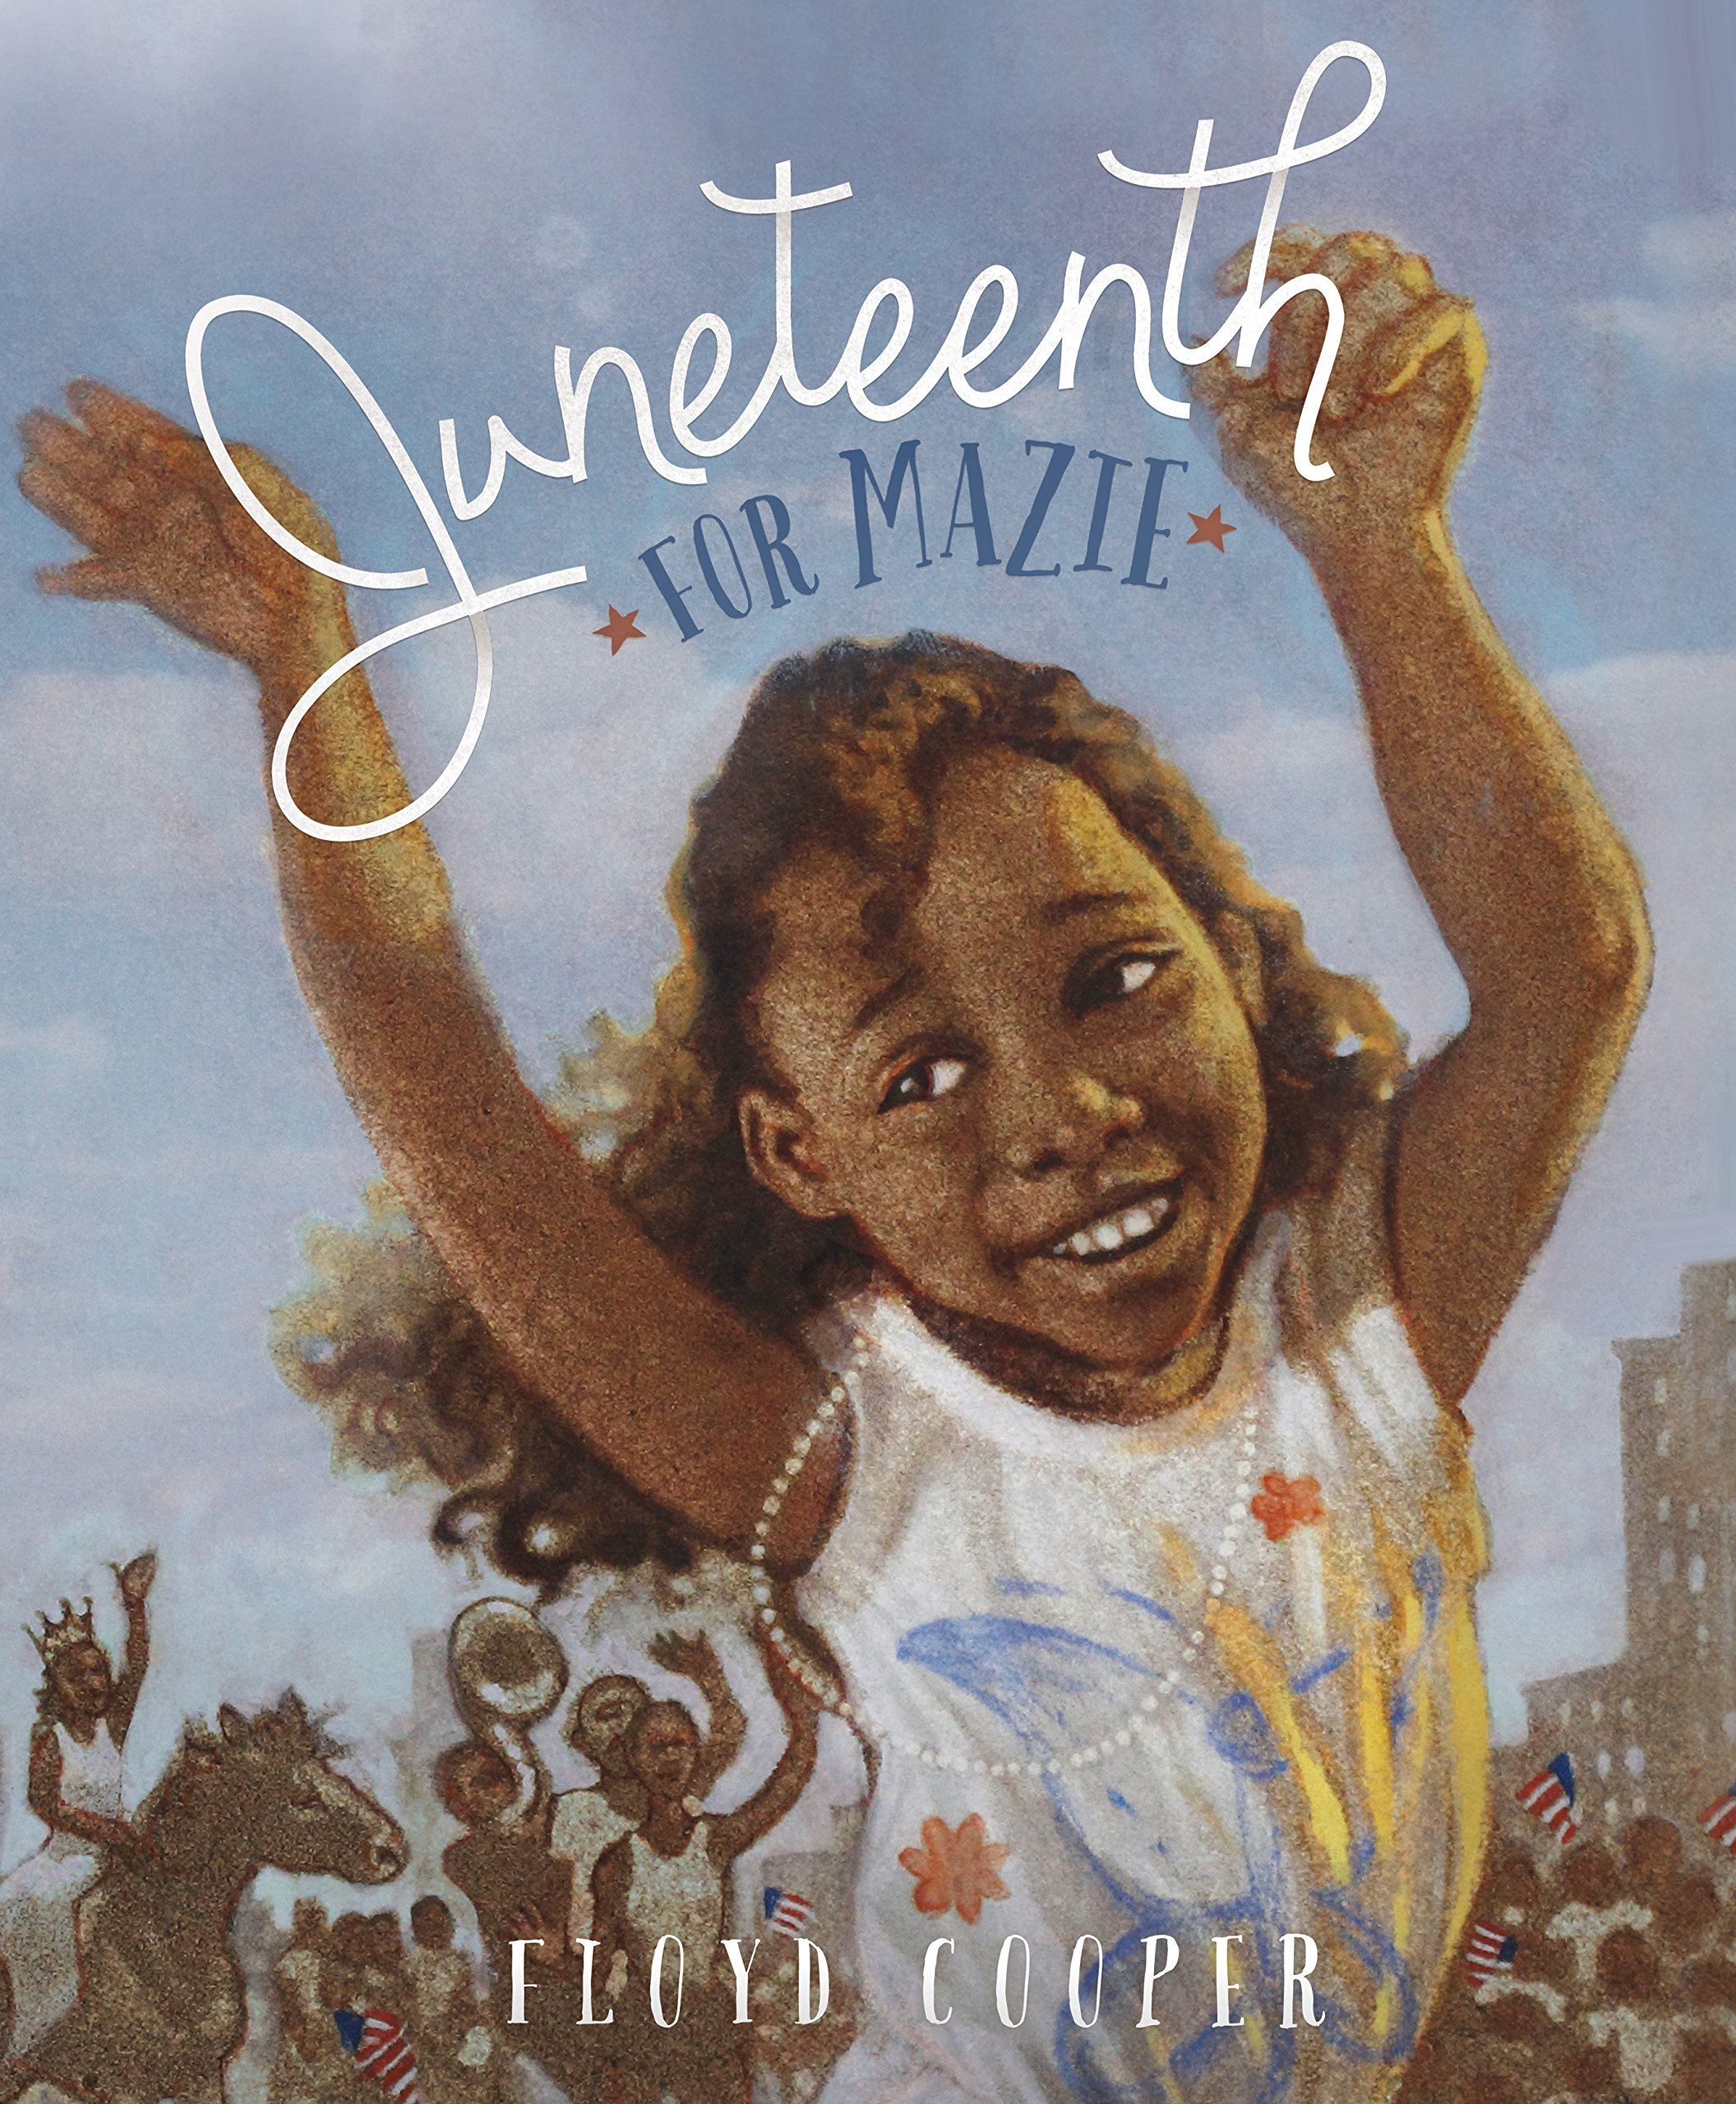 Juneteenth for Mazie – Floyd Cooper